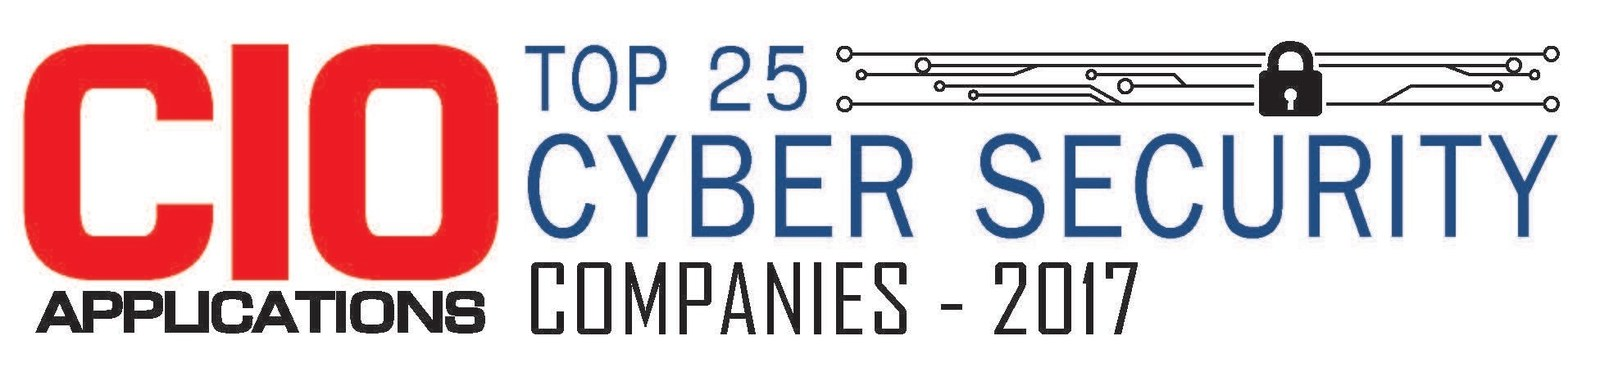 Best Cyber Security News